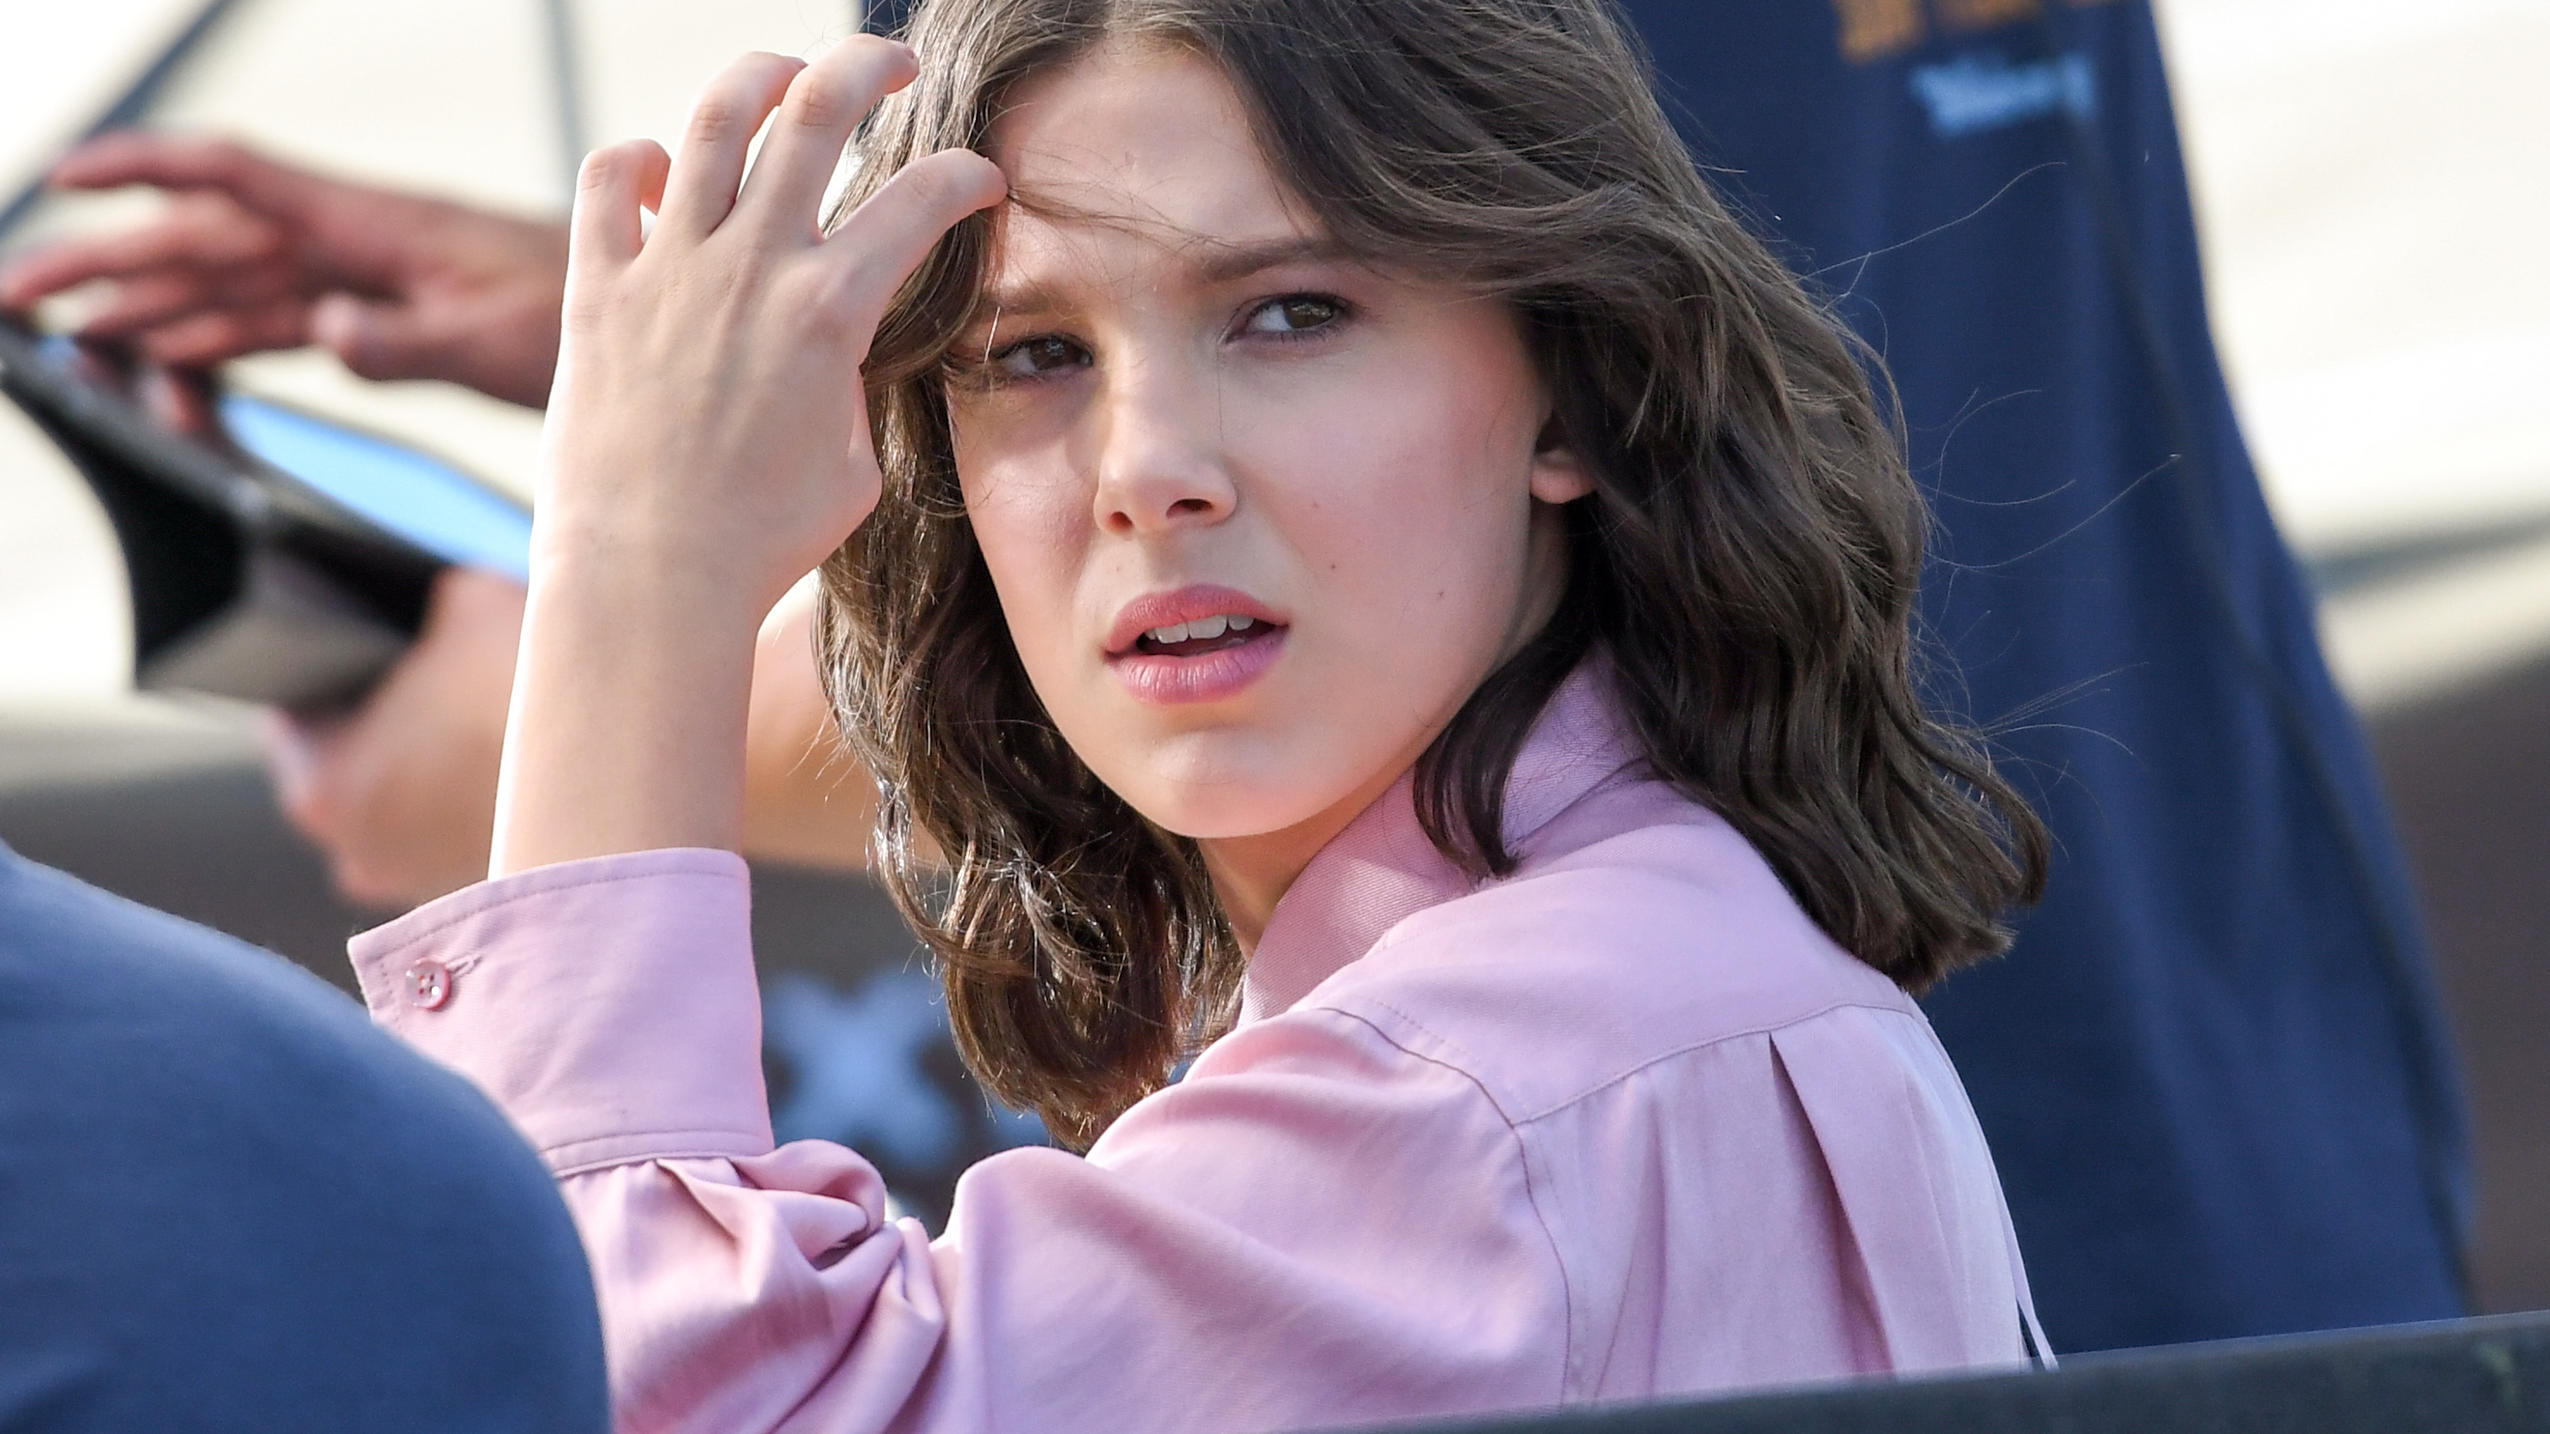 Discussion on this topic: Stranger Things' Star Millie Bobby Brown Is , stranger-things-star-millie-bobby-brown-is/